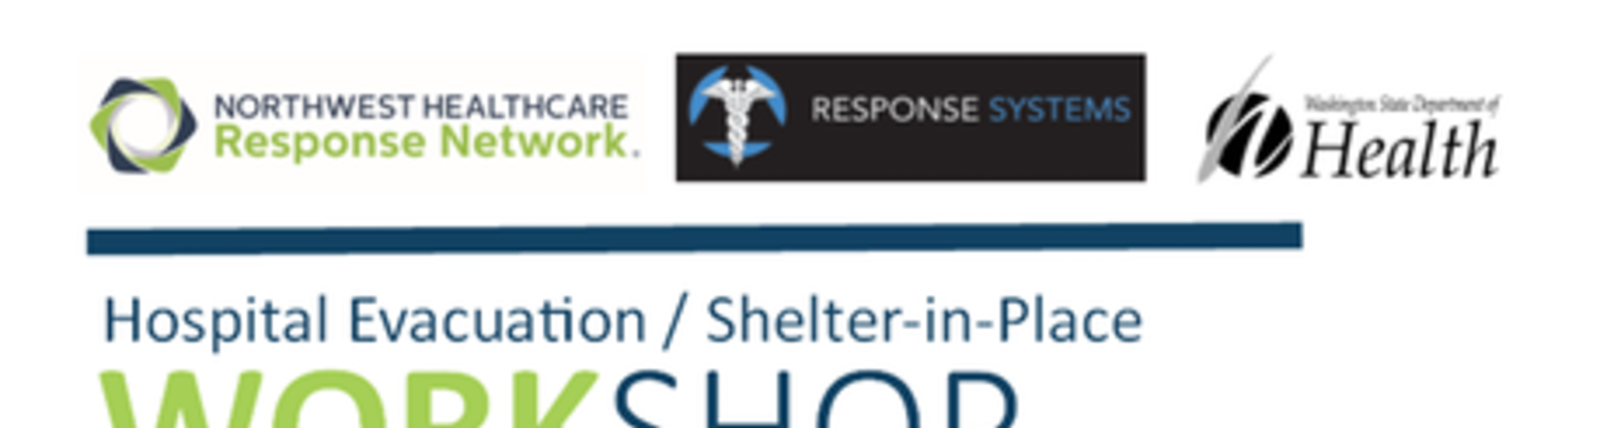 Northwest Healthcare Response Network